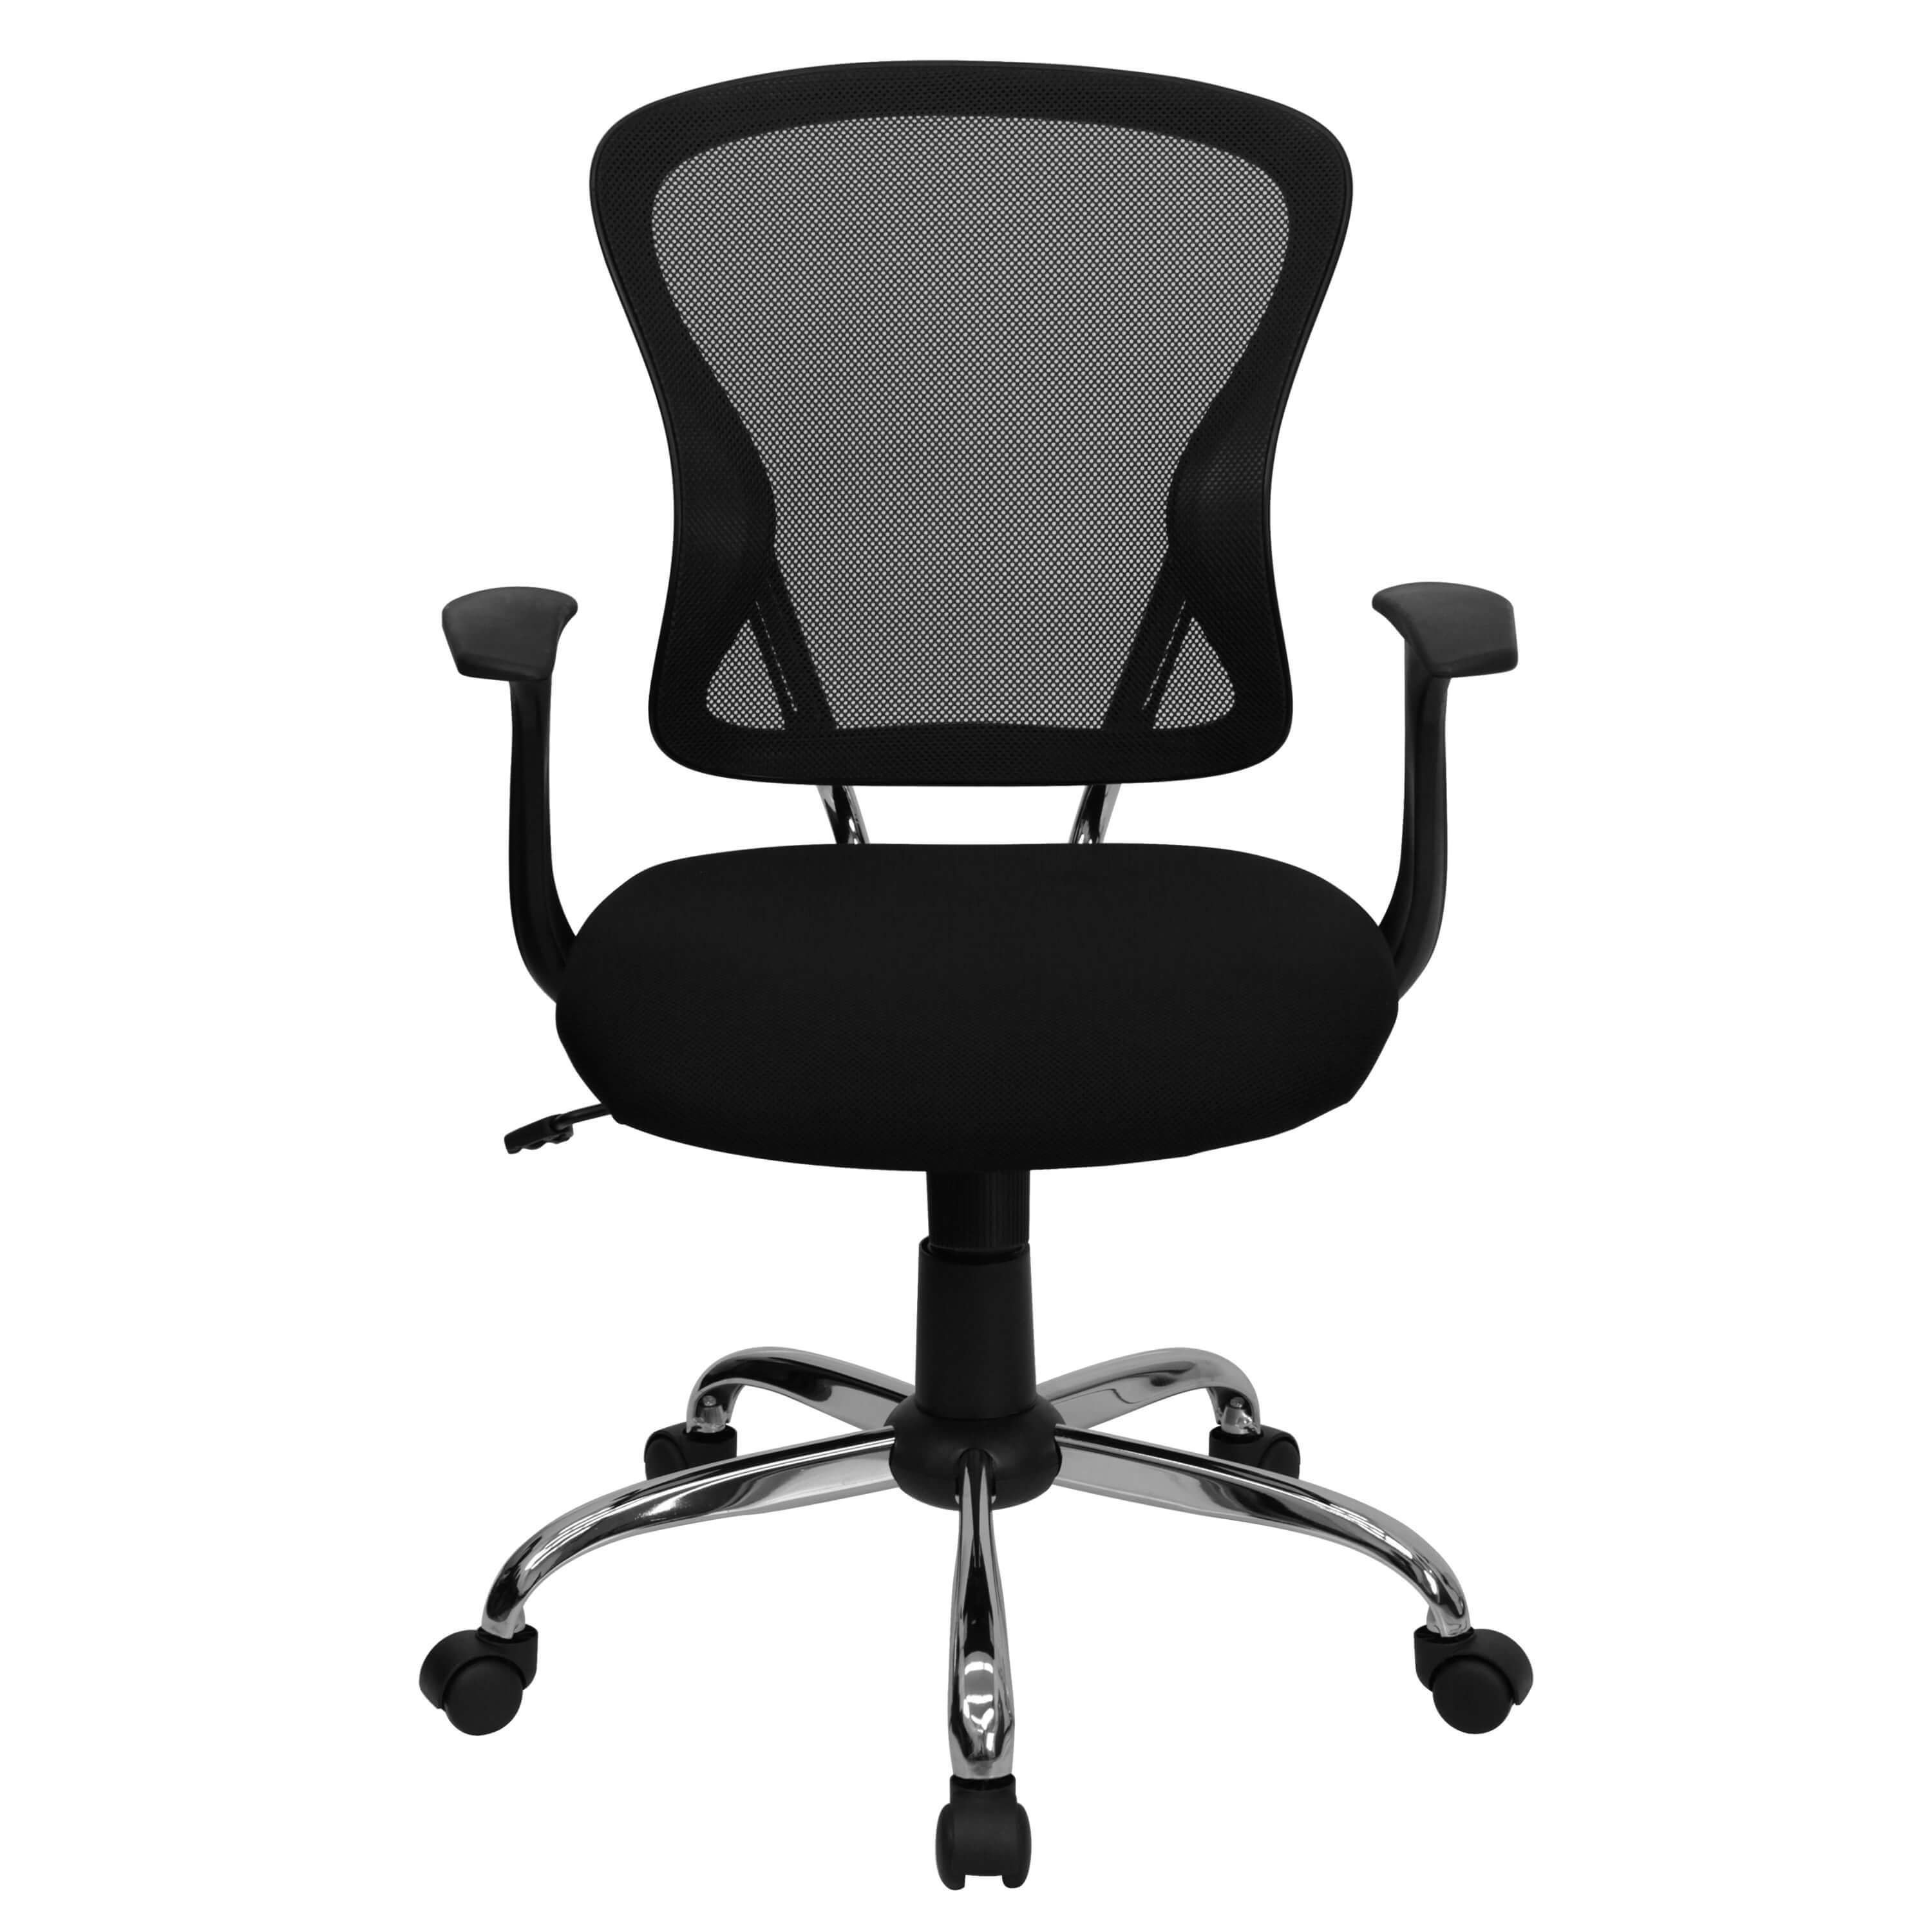 Colorful desk chairs CUB H 8369F BLK GG FLA